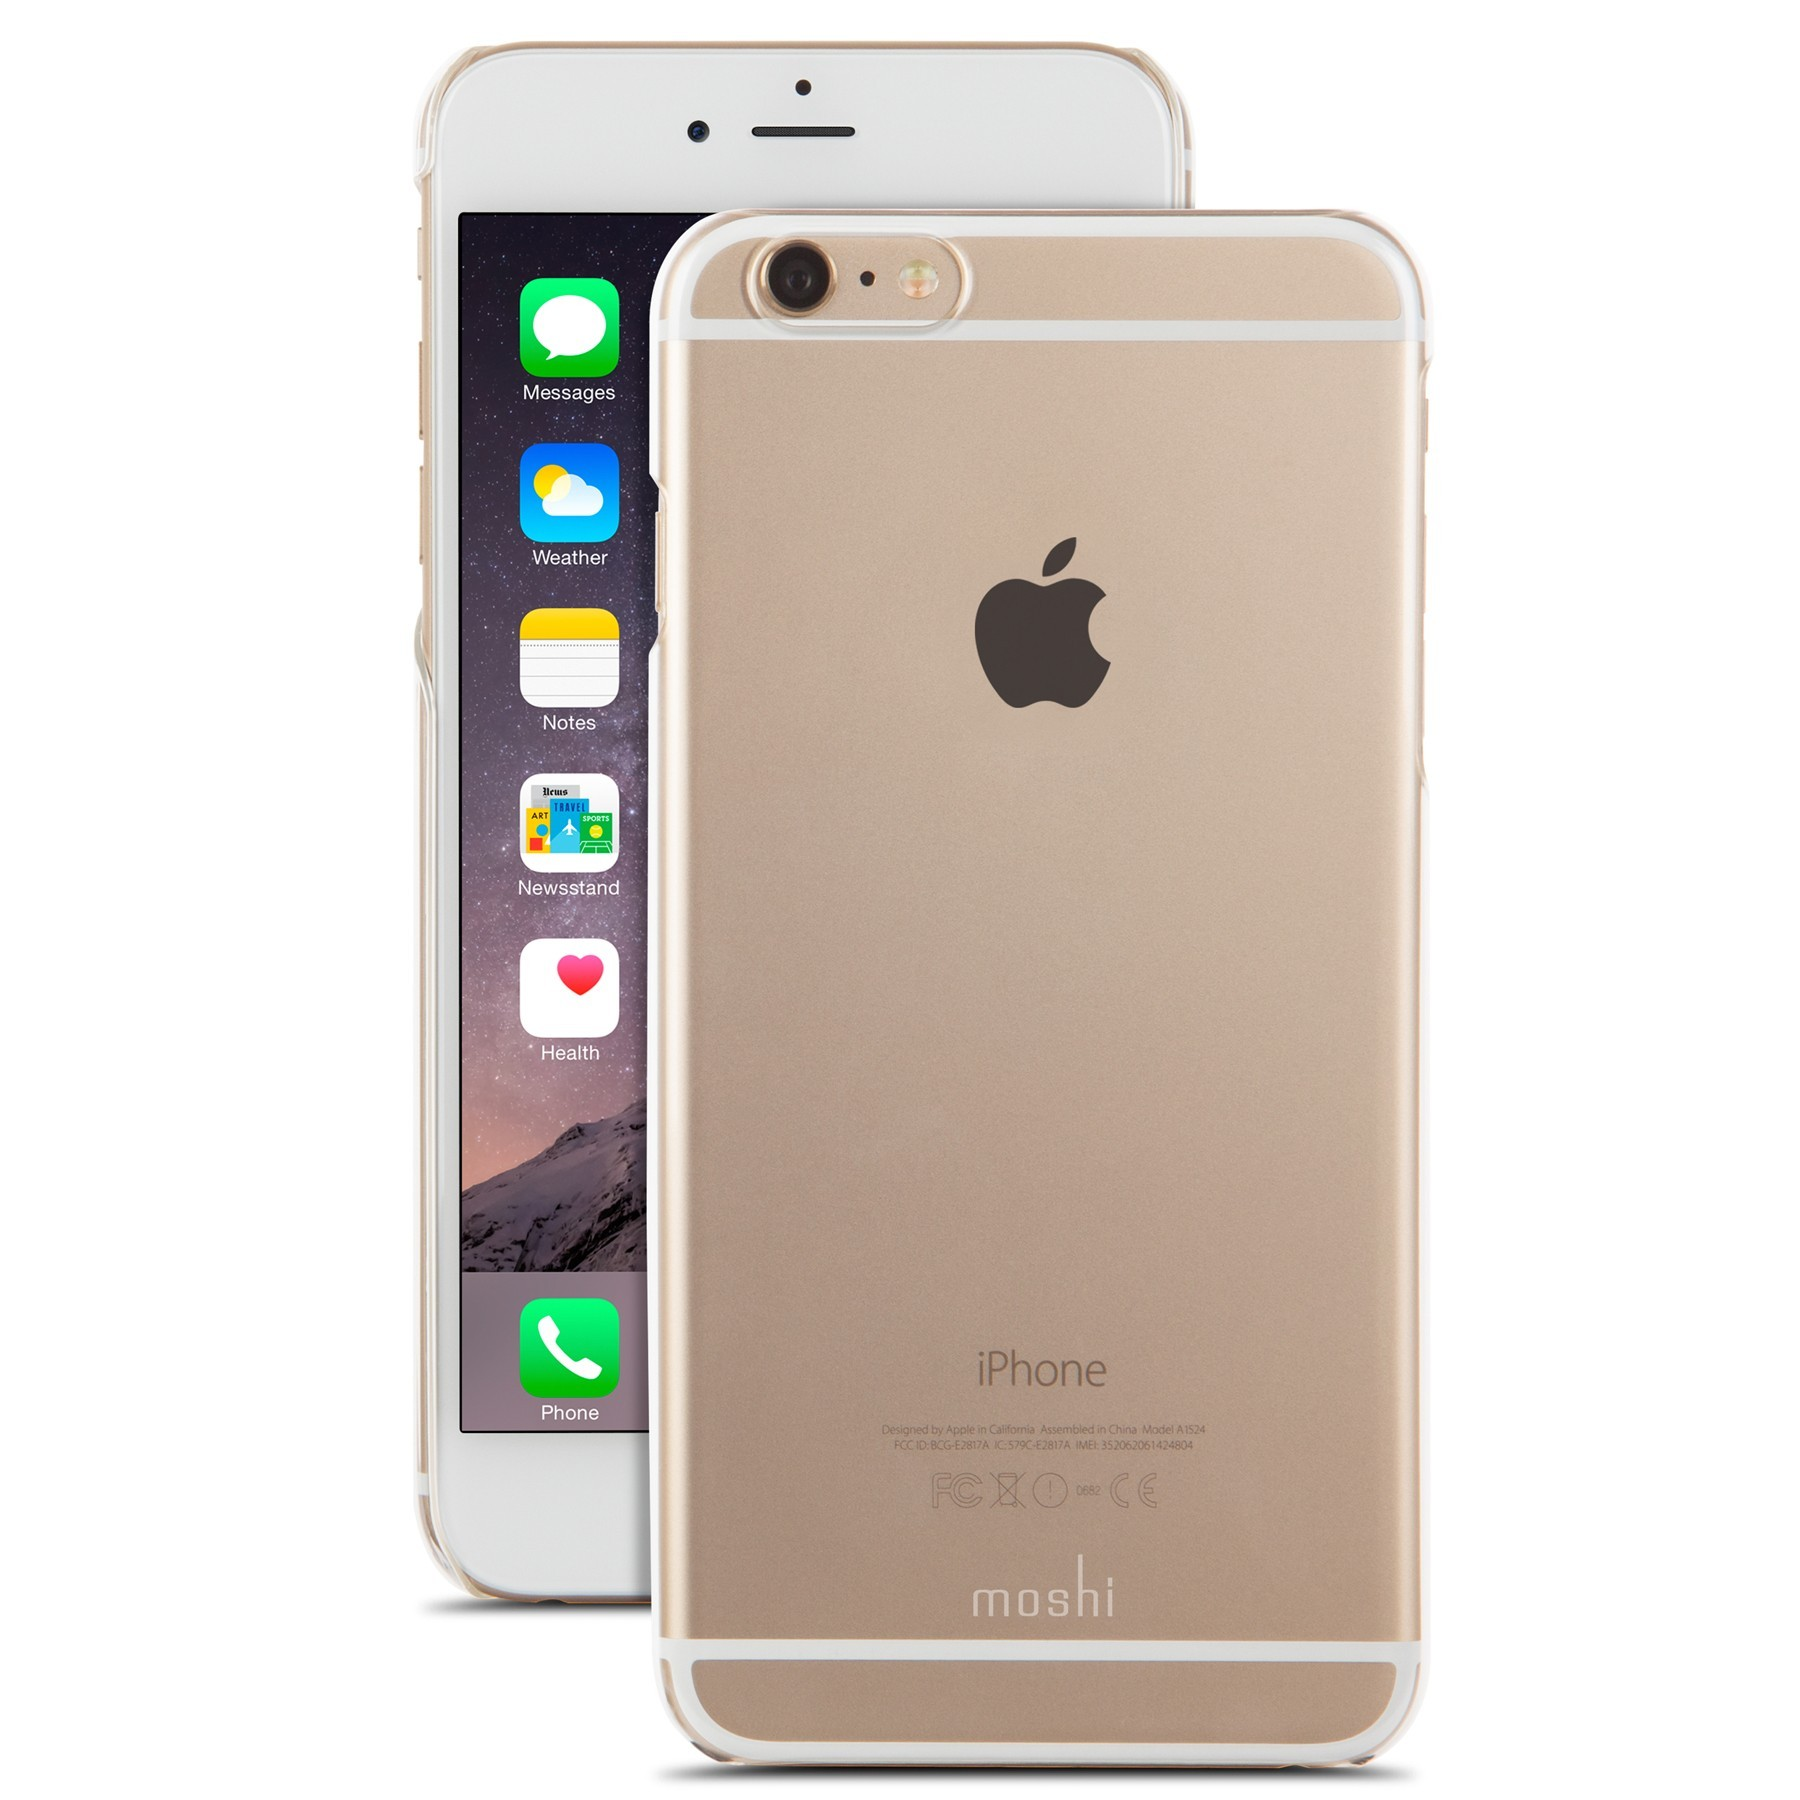 iPhone 6 Plus 128G Gold Ảnh số 38367782